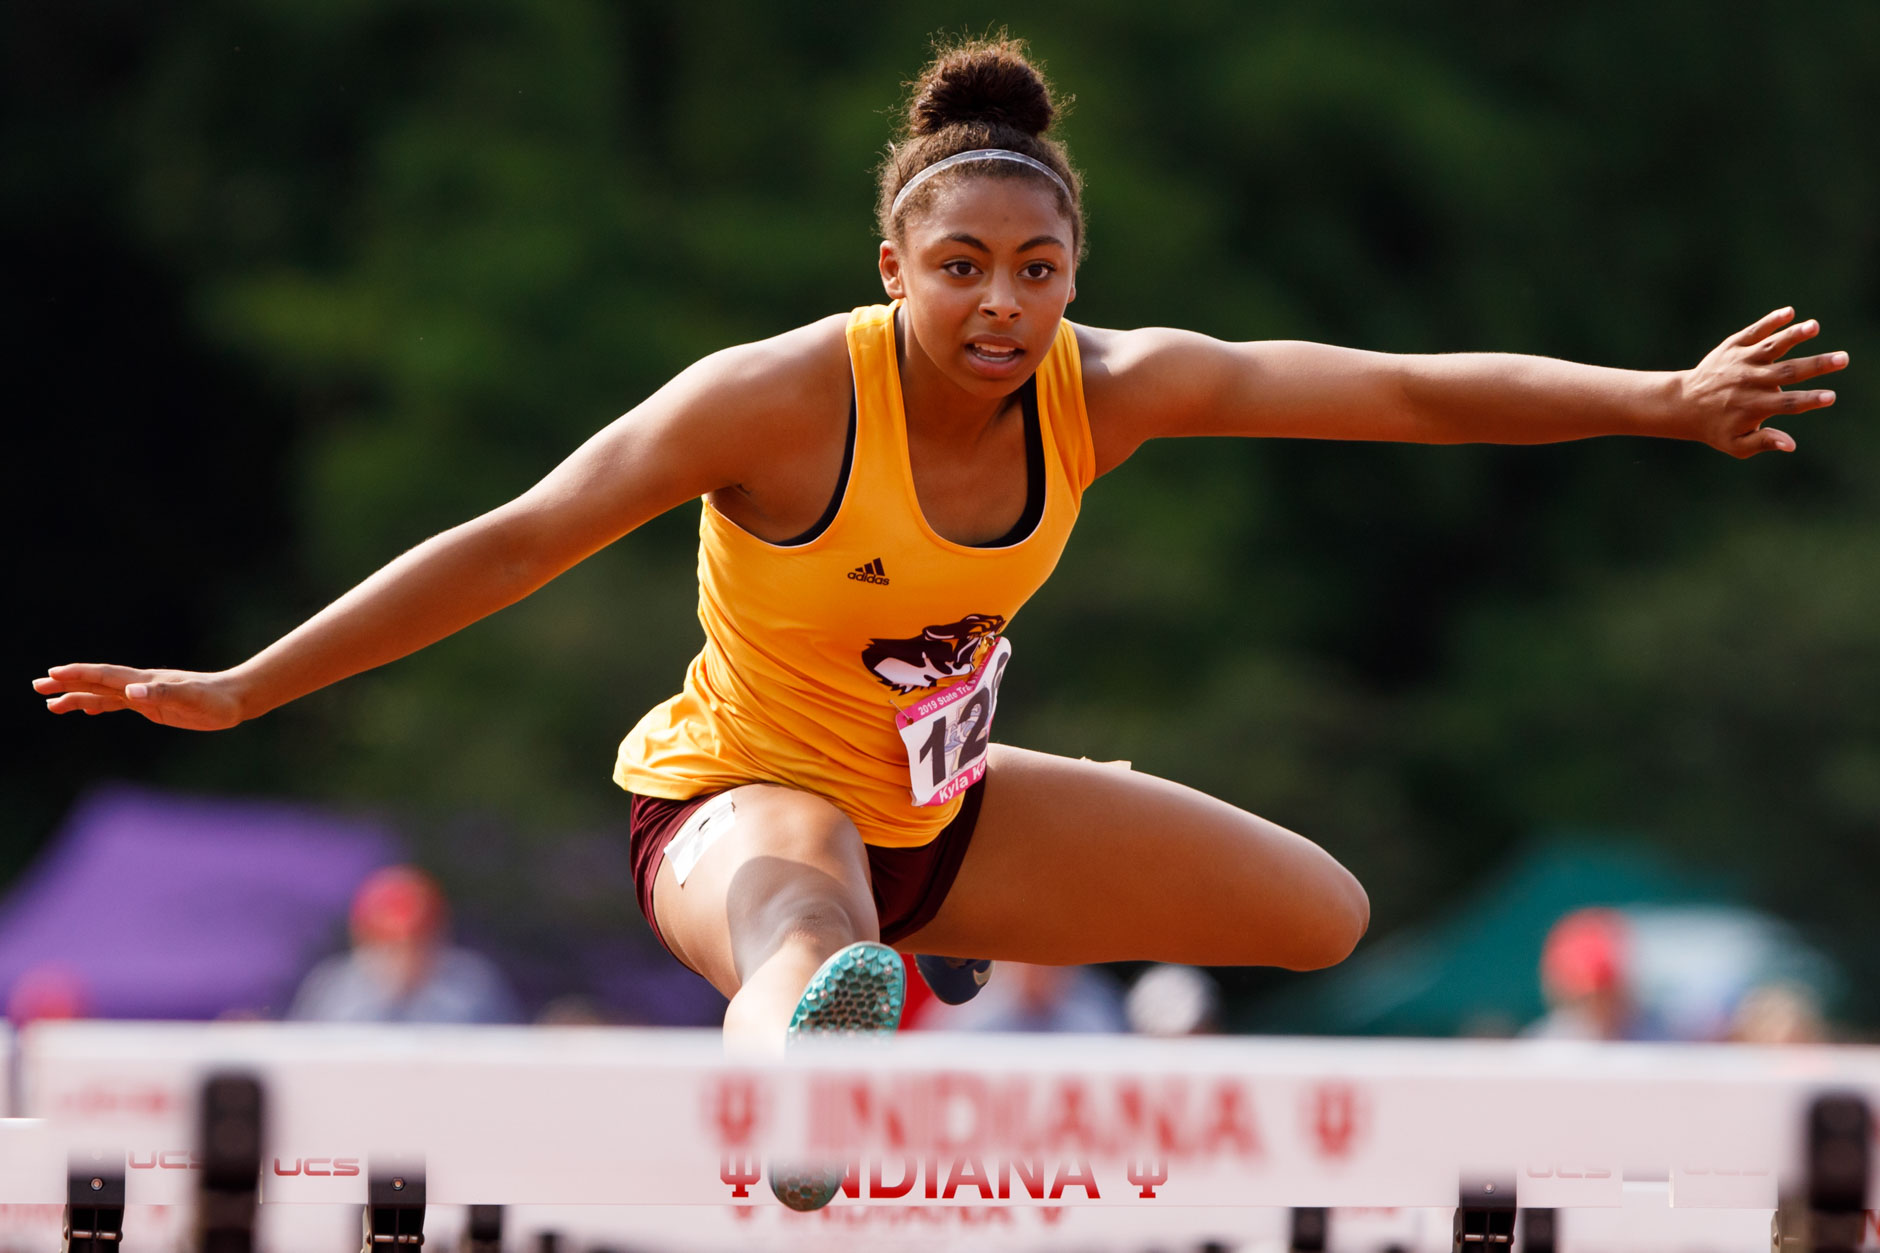 Bloomington North's Kyla Kante competes in the 100 meter hurdles during the IHSAA Girls Track and Field State Finals in Bloomington, Indiana on Saturday, June 1, 2019. (James Brosher for The Herald-Times)